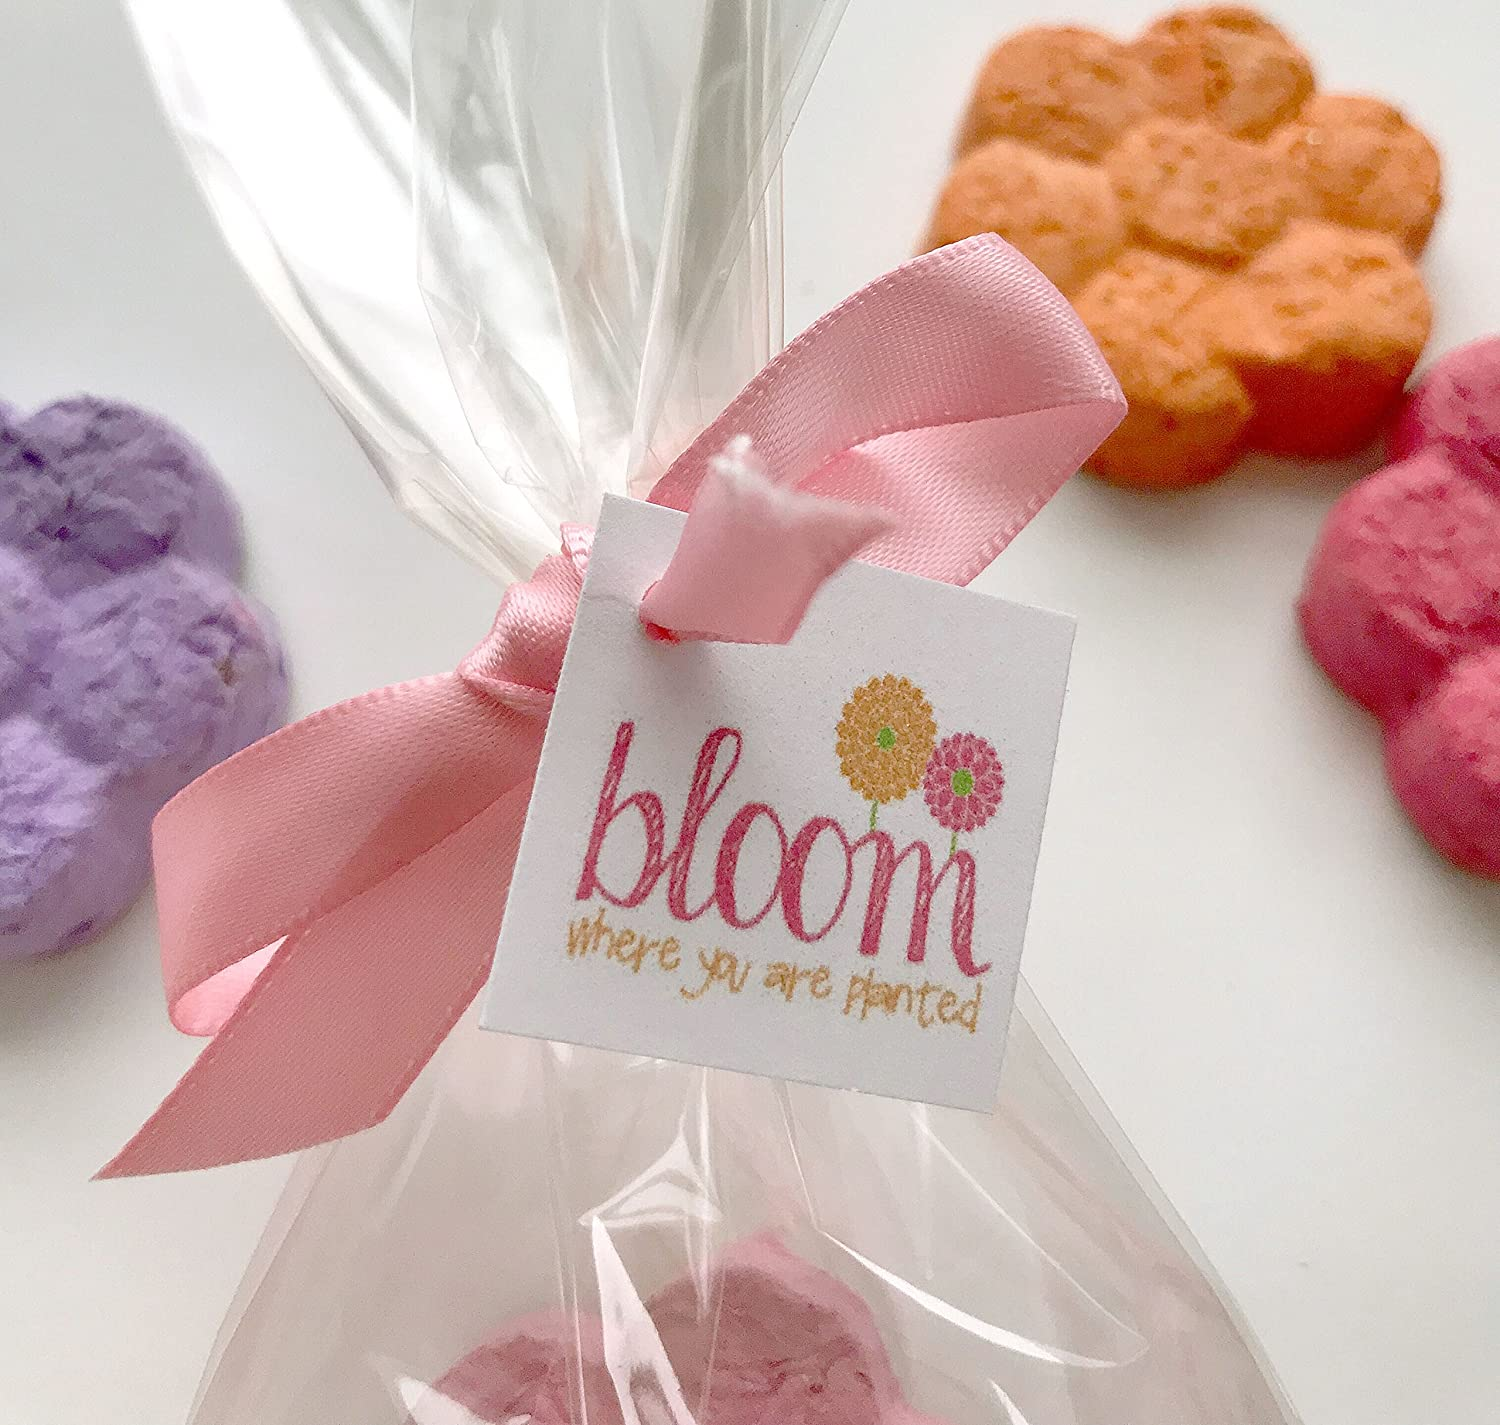 Amazon.com: PaperBloom™ Seed Paper Flowers to Grow, Customizable ...